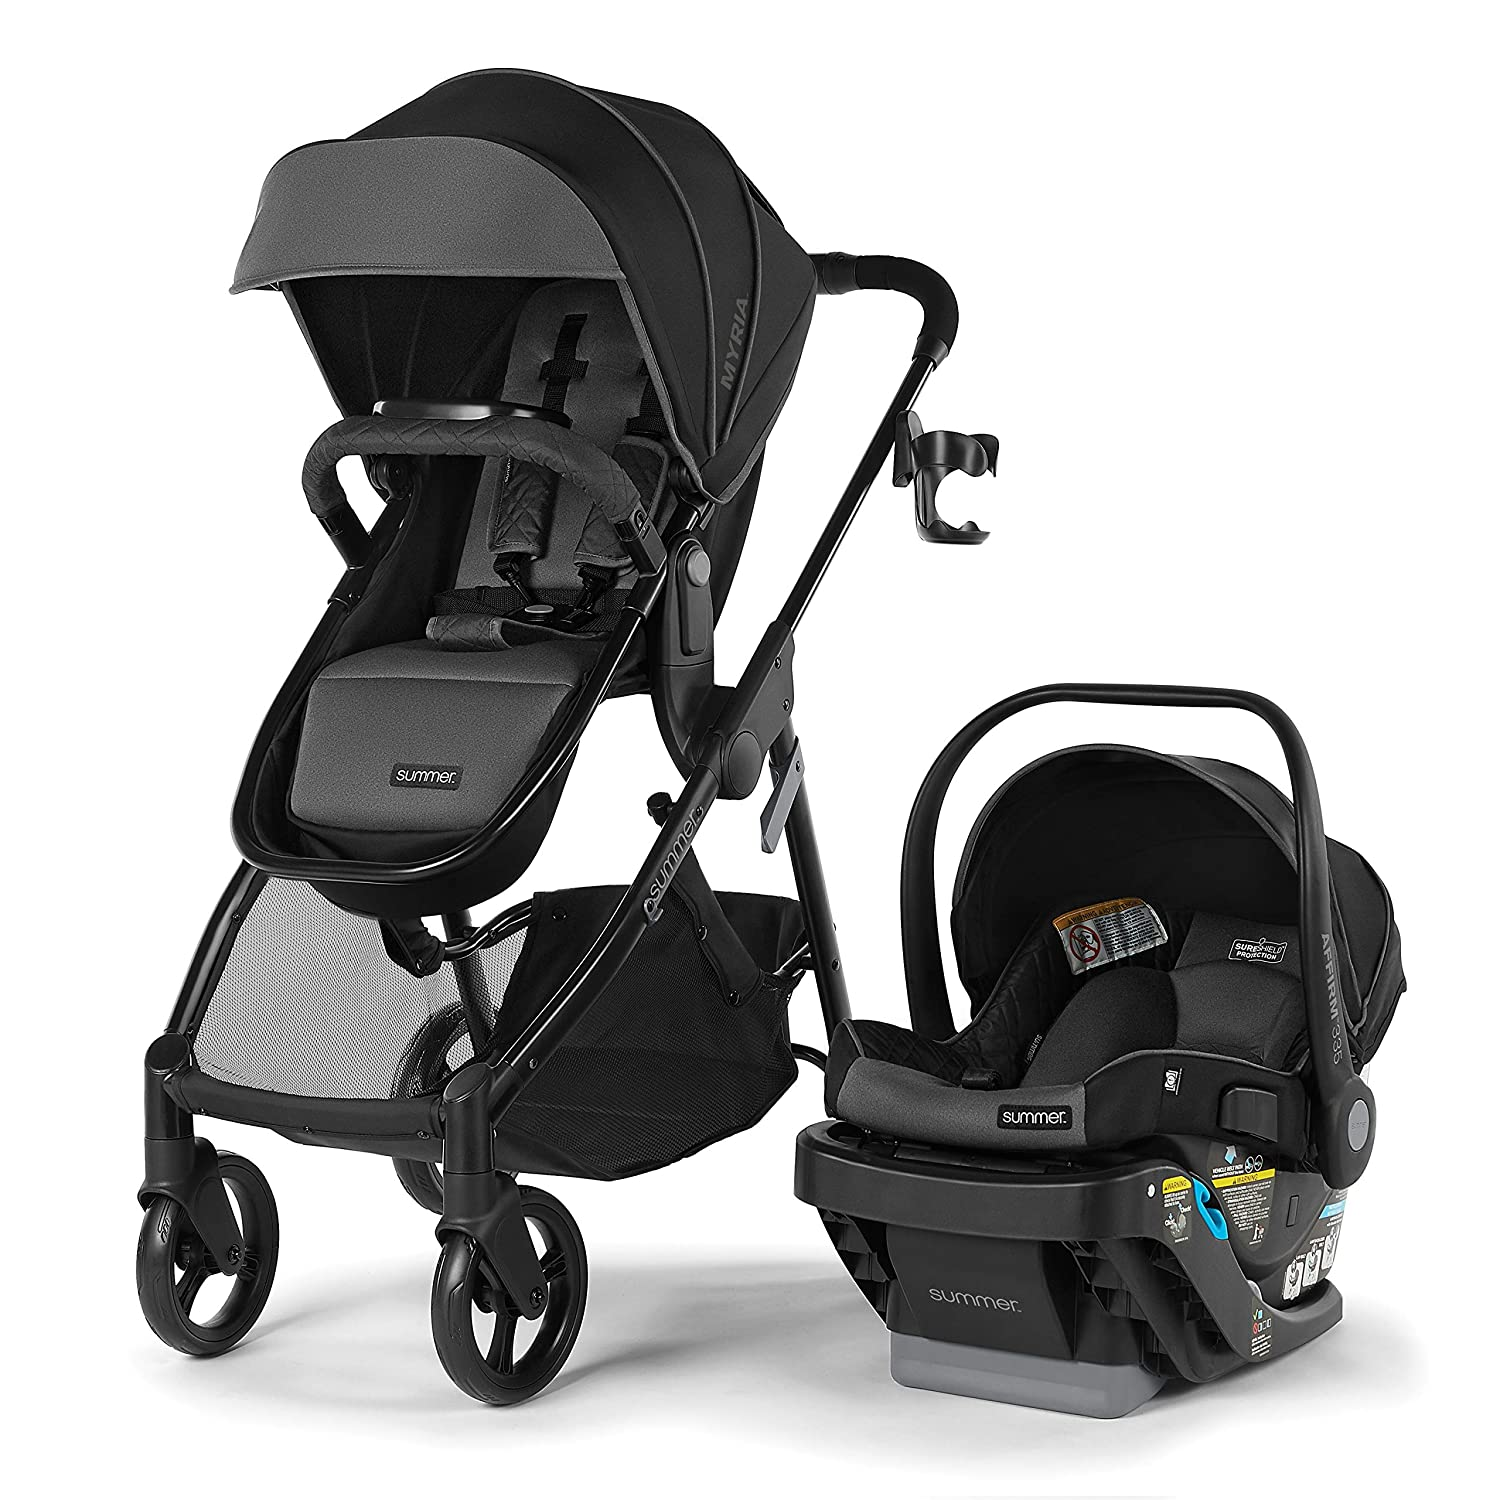 Summer Myria DLX Modular Travel System with The Affirm 335 DLX Rear-Facing Infant Car Seat, Slate Gray – Convenient Stroller and Car Seat with Advanced Safety Features